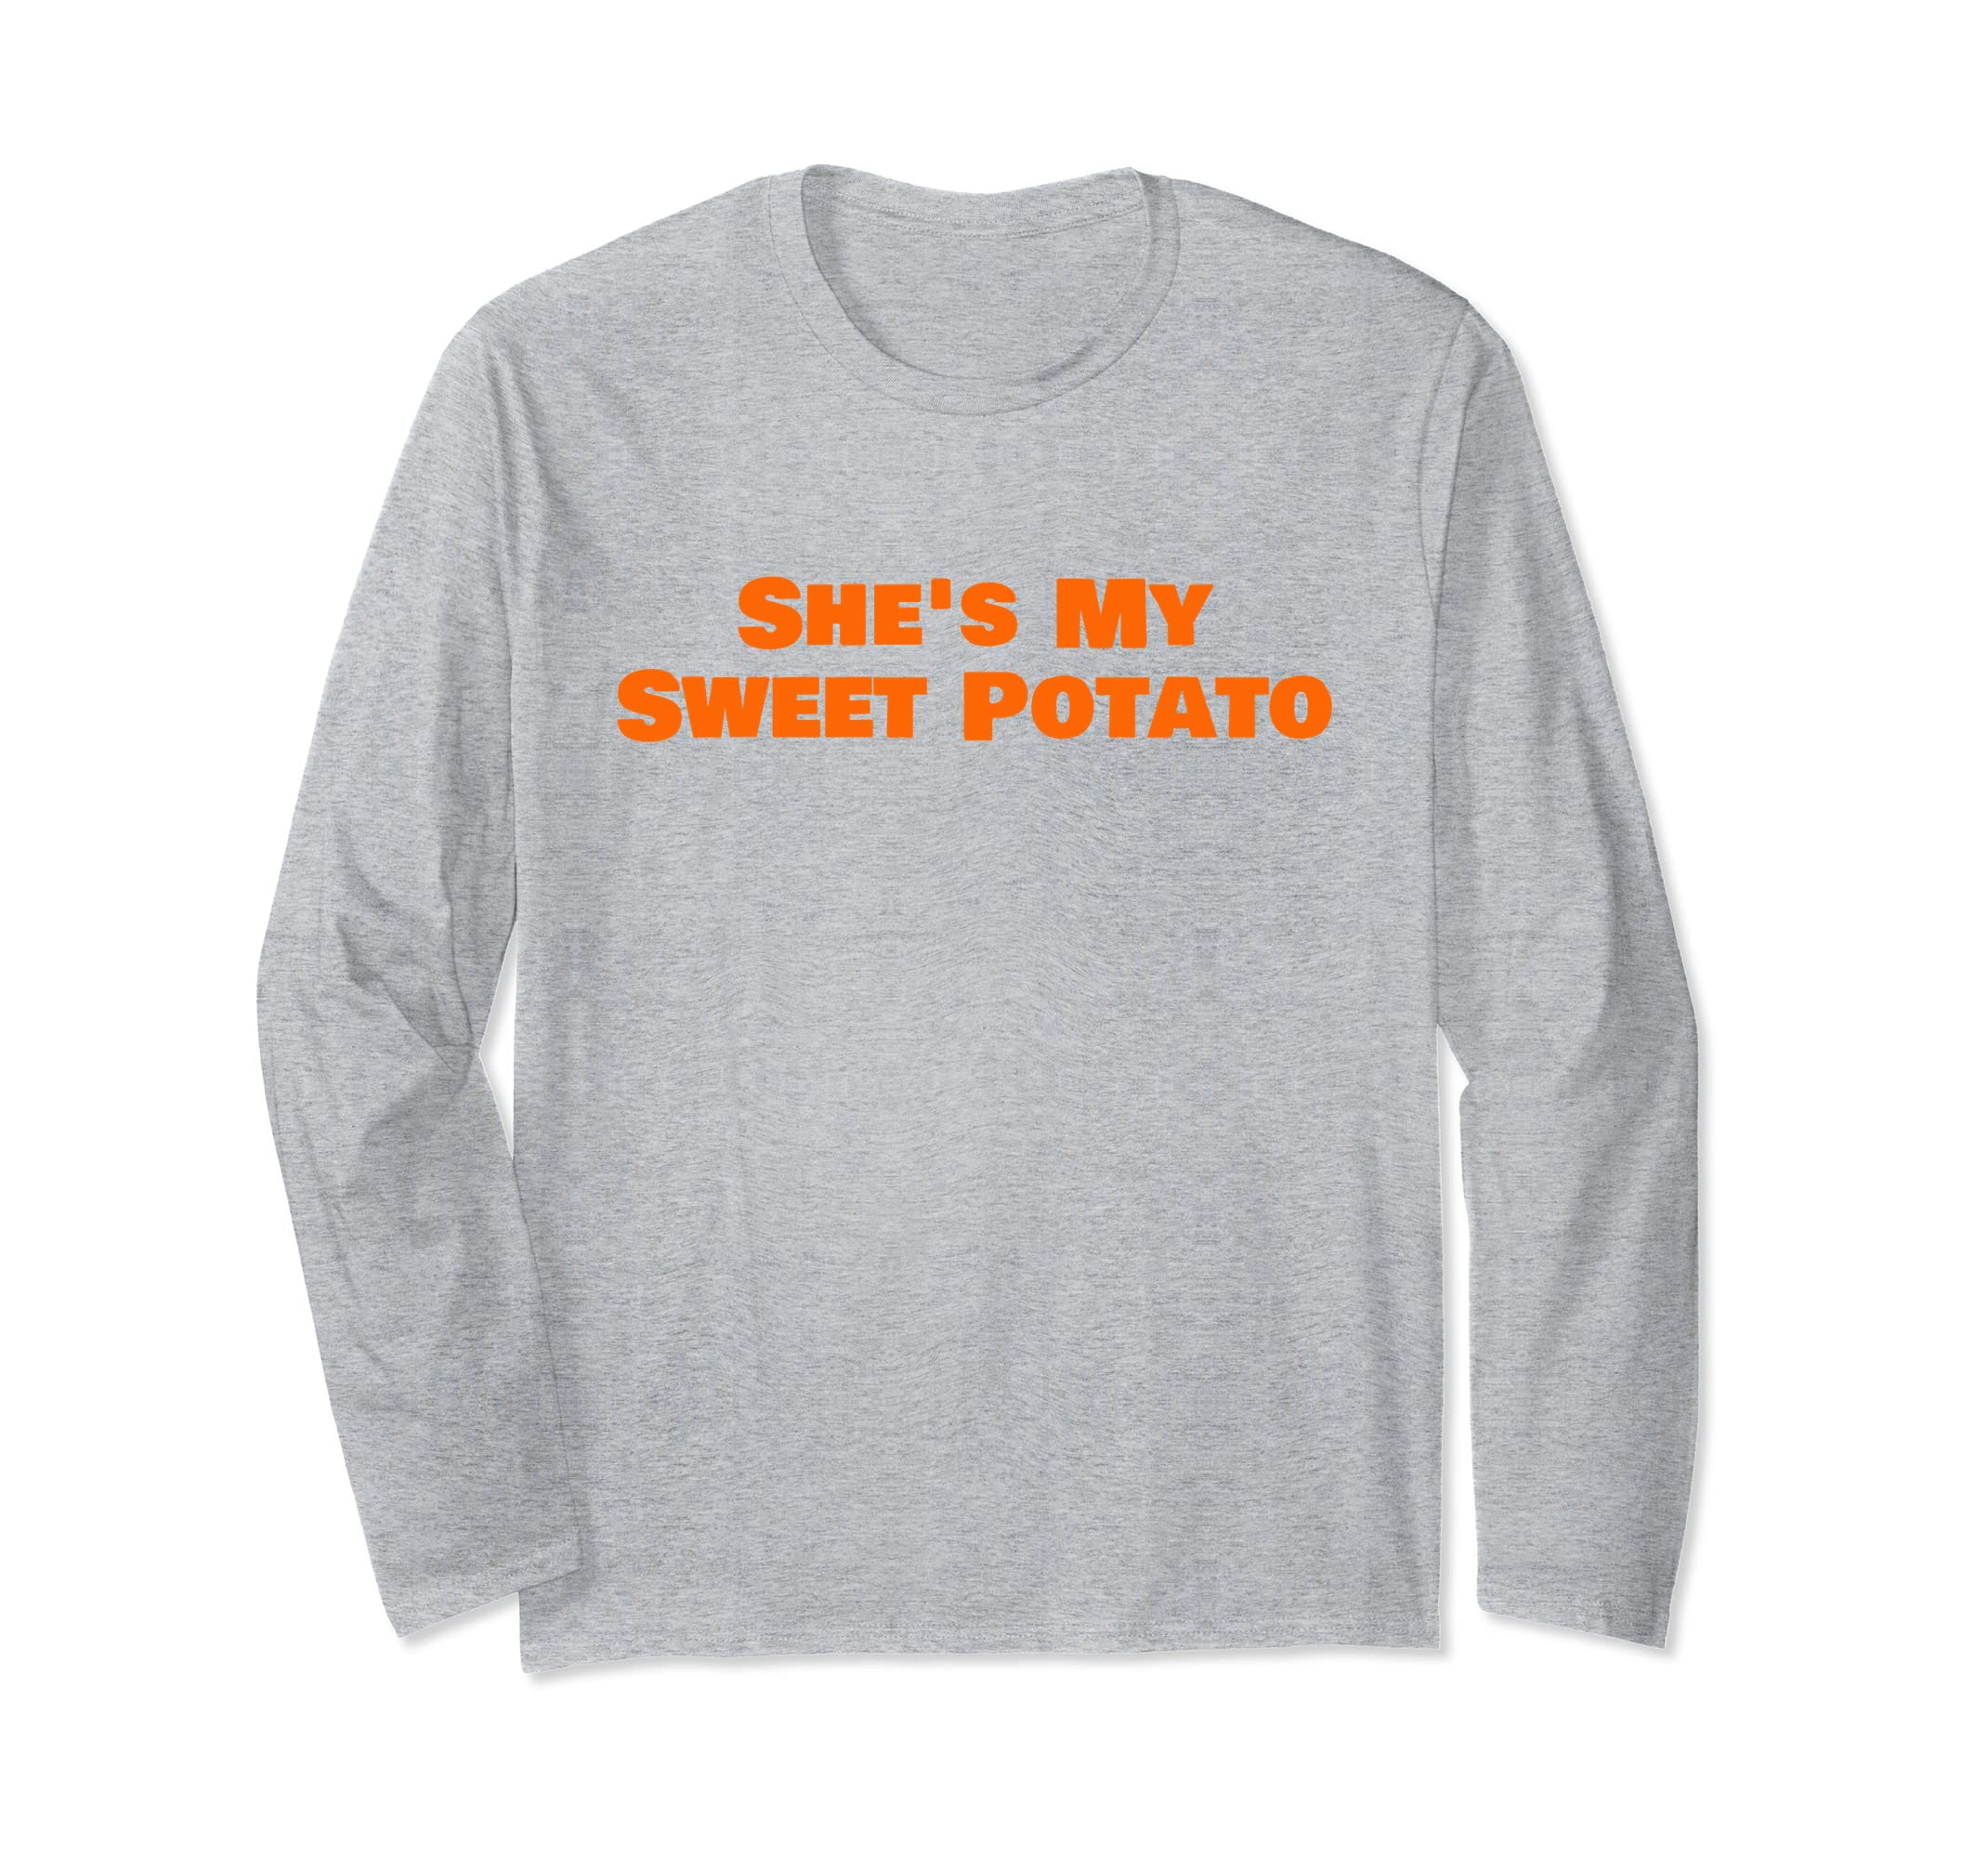 She's My Sweet Potato I Yam T shirt Matching Couple Shirts-4LVS